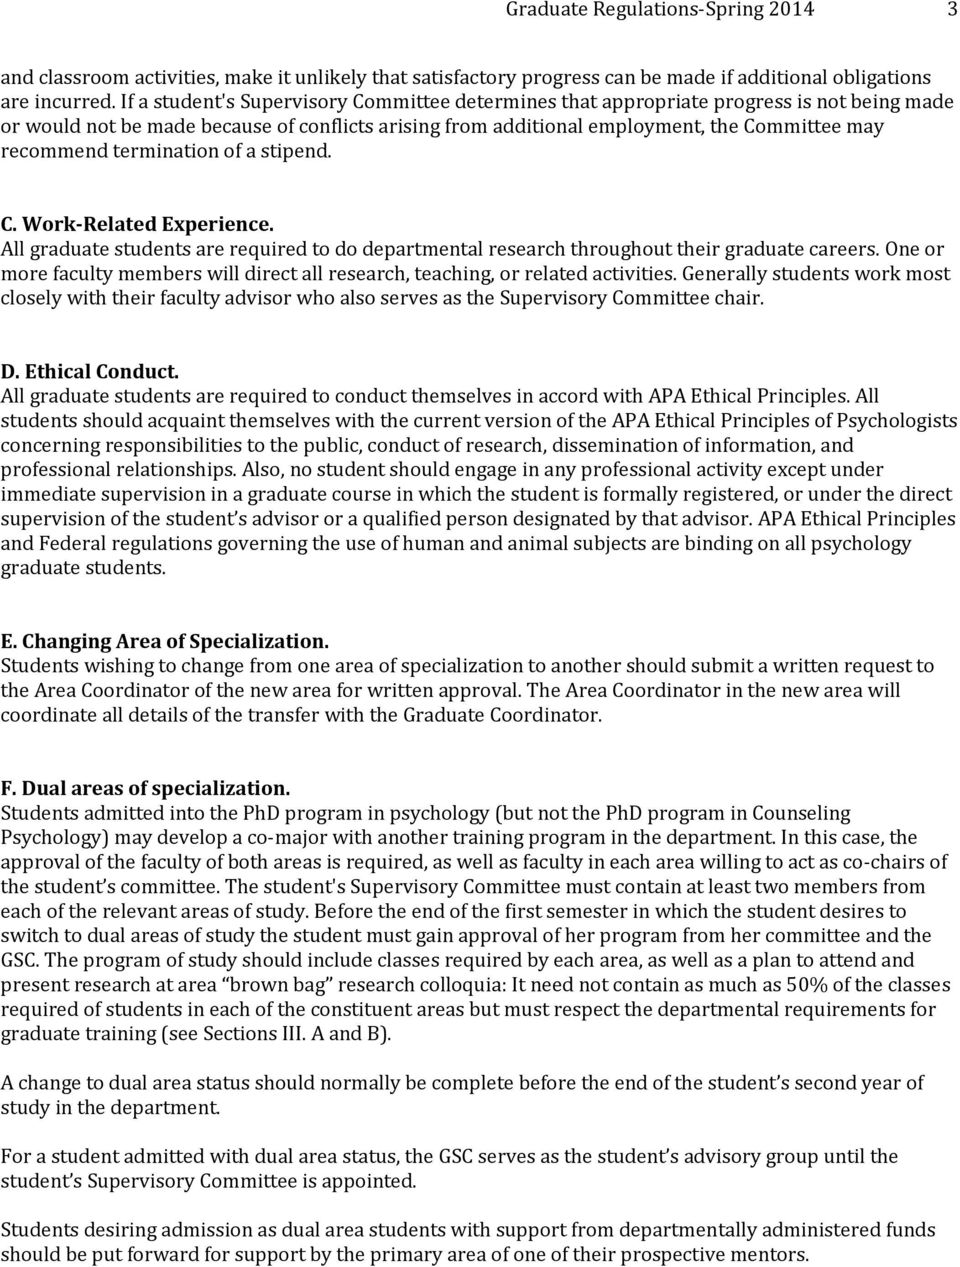 termination of a stipend. C. Work Related Experience. All graduate students are required to do departmental research throughout their graduate careers.